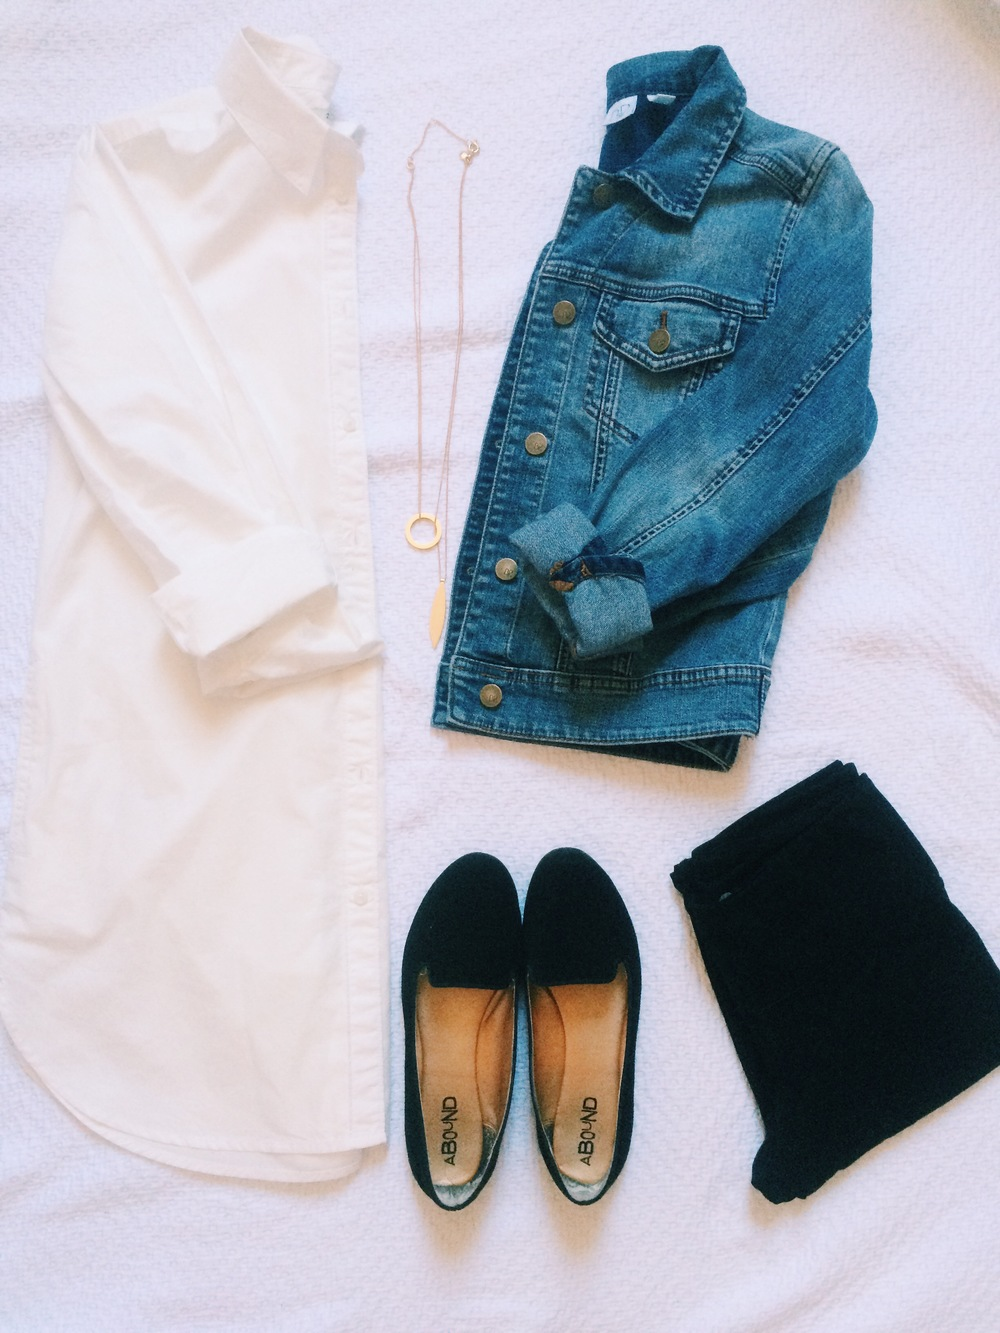 Shirt: Madewell, Pants: Old Navy, Necklace: Madewell, Jean Jacket: Brass Plum, Shoes: Nordstrom Rack